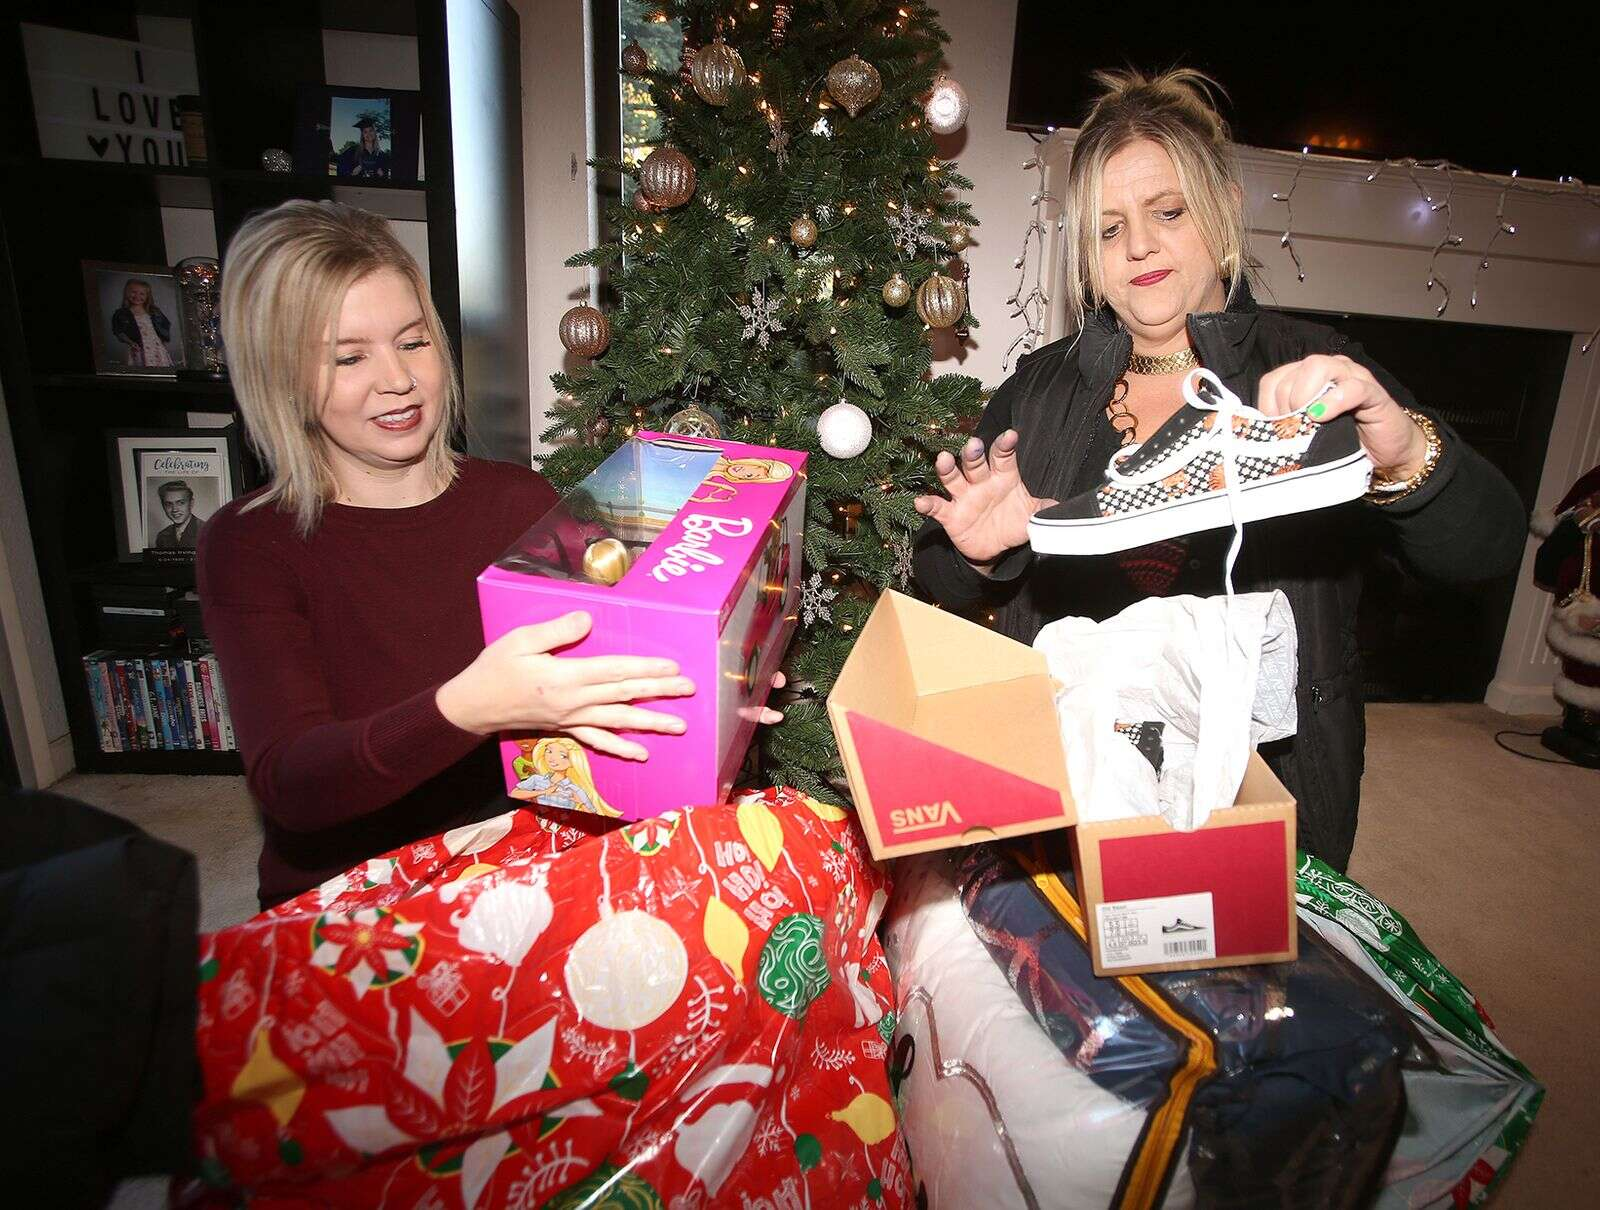 Savannah's Angels co-founders Crystal Grauke (left) and Cynthia Prout show off bags full of gifts slated for children in the community this year. The two are looking for some last minute angels to help out with some families in need this holiday.   Photo: Elias Funez